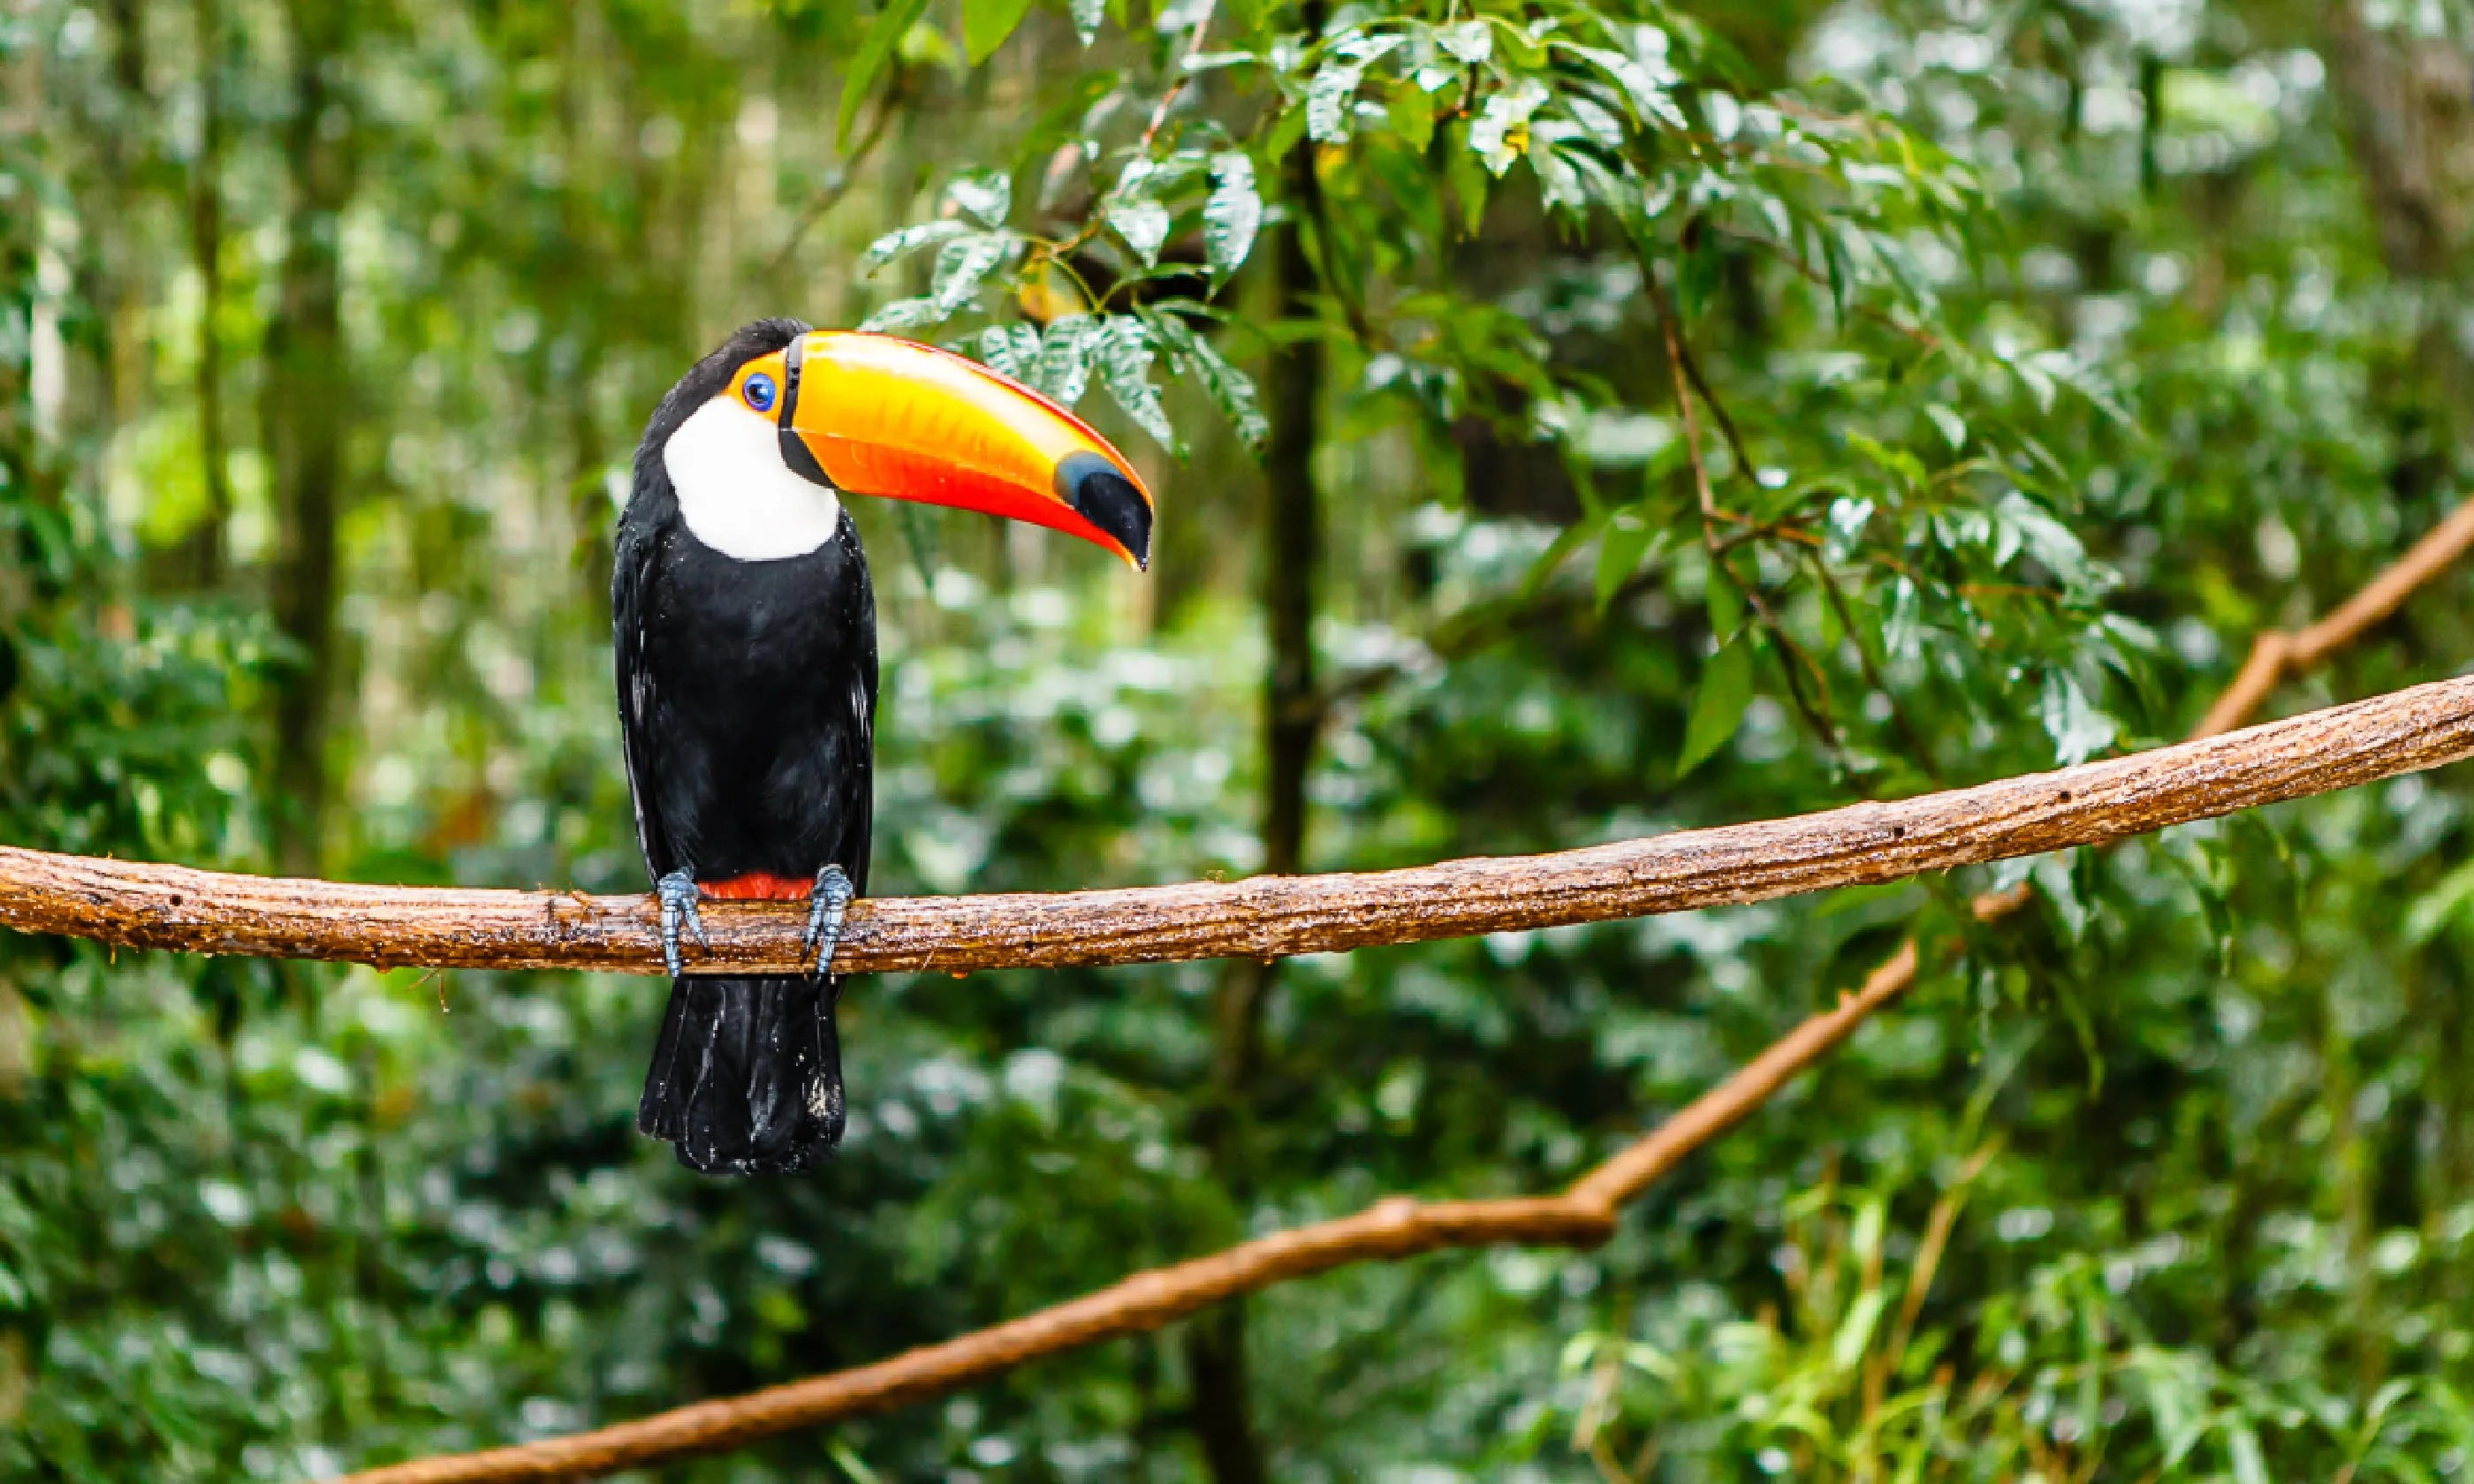 Image of: Amazon Rainforest Incredible Animals In Brazils Amazon Rainforest Wanderlust Travel Magazine Amazon Rainforest Of The Most Incredible Animals Wanderlust